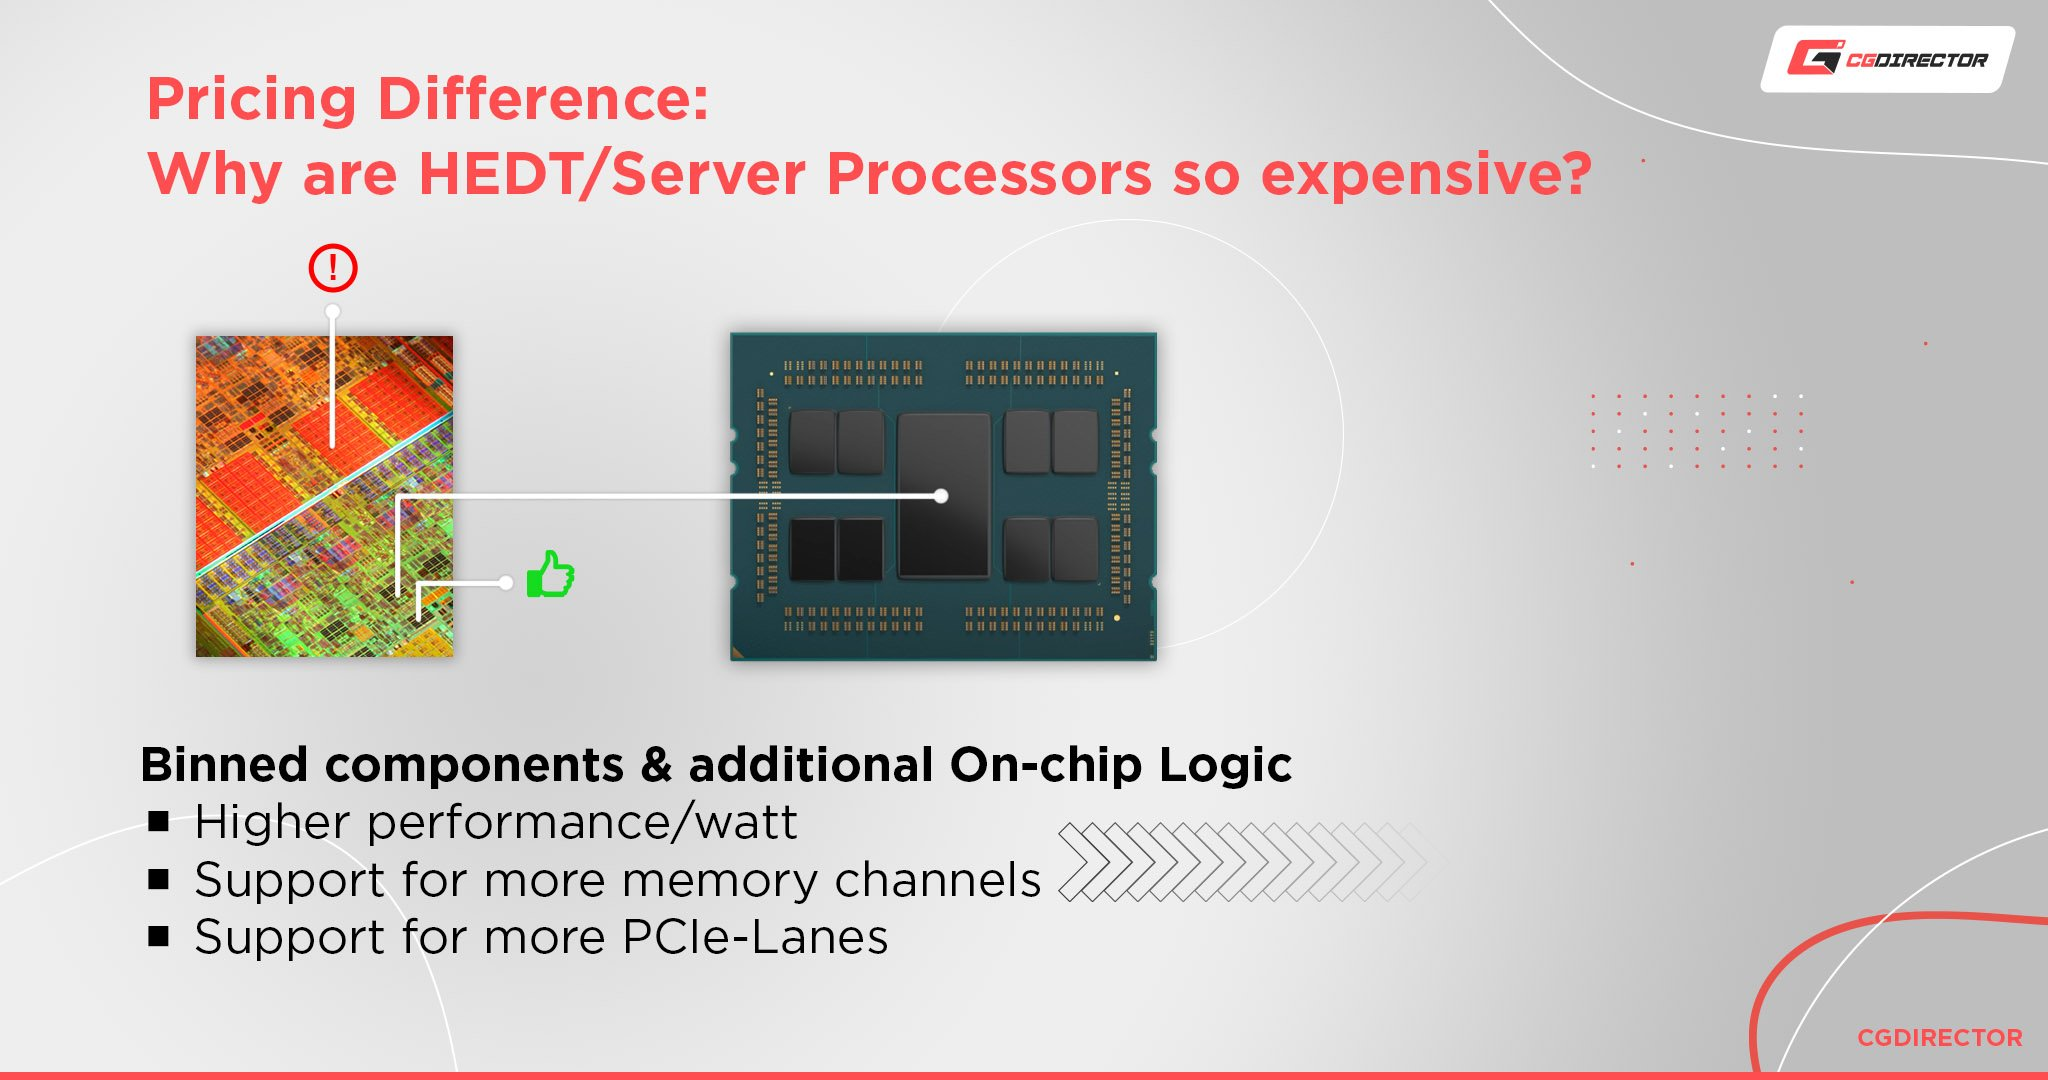 Pricing Difference - HEDT processors